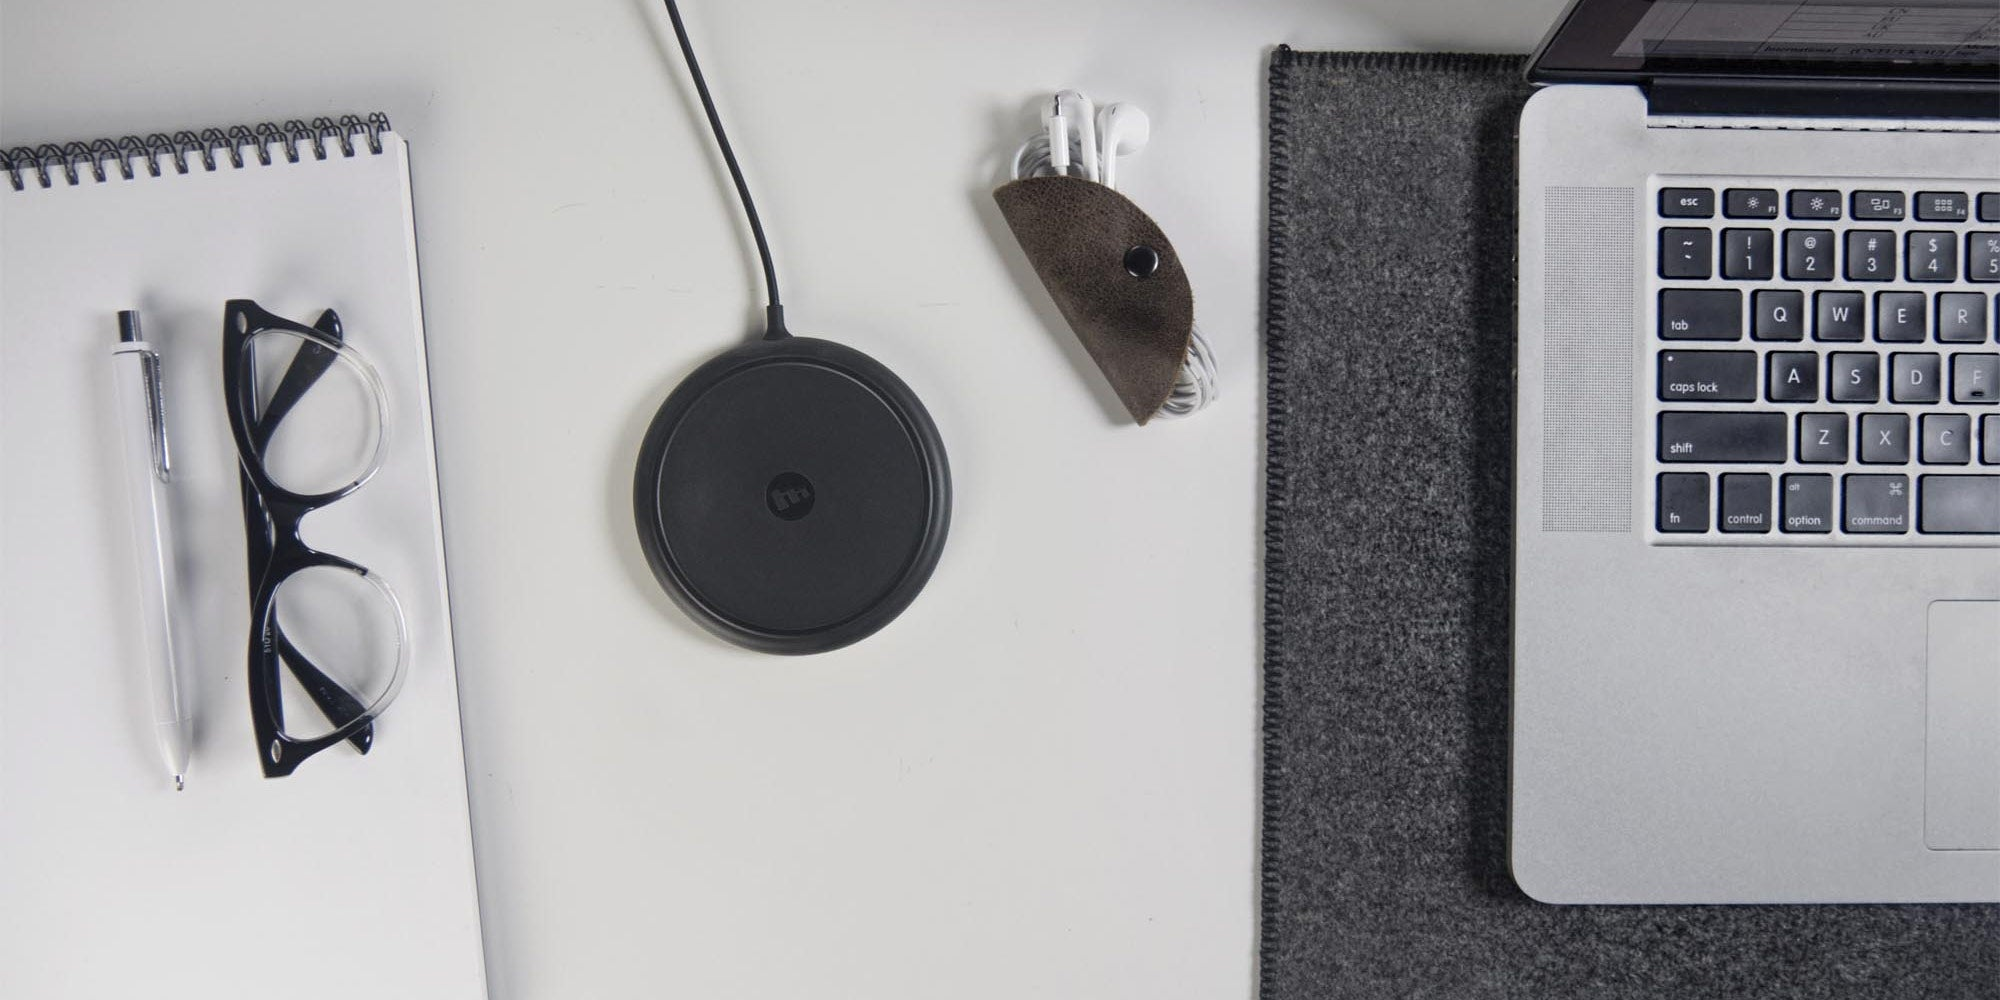 A mophie wireless charging pad on a desk